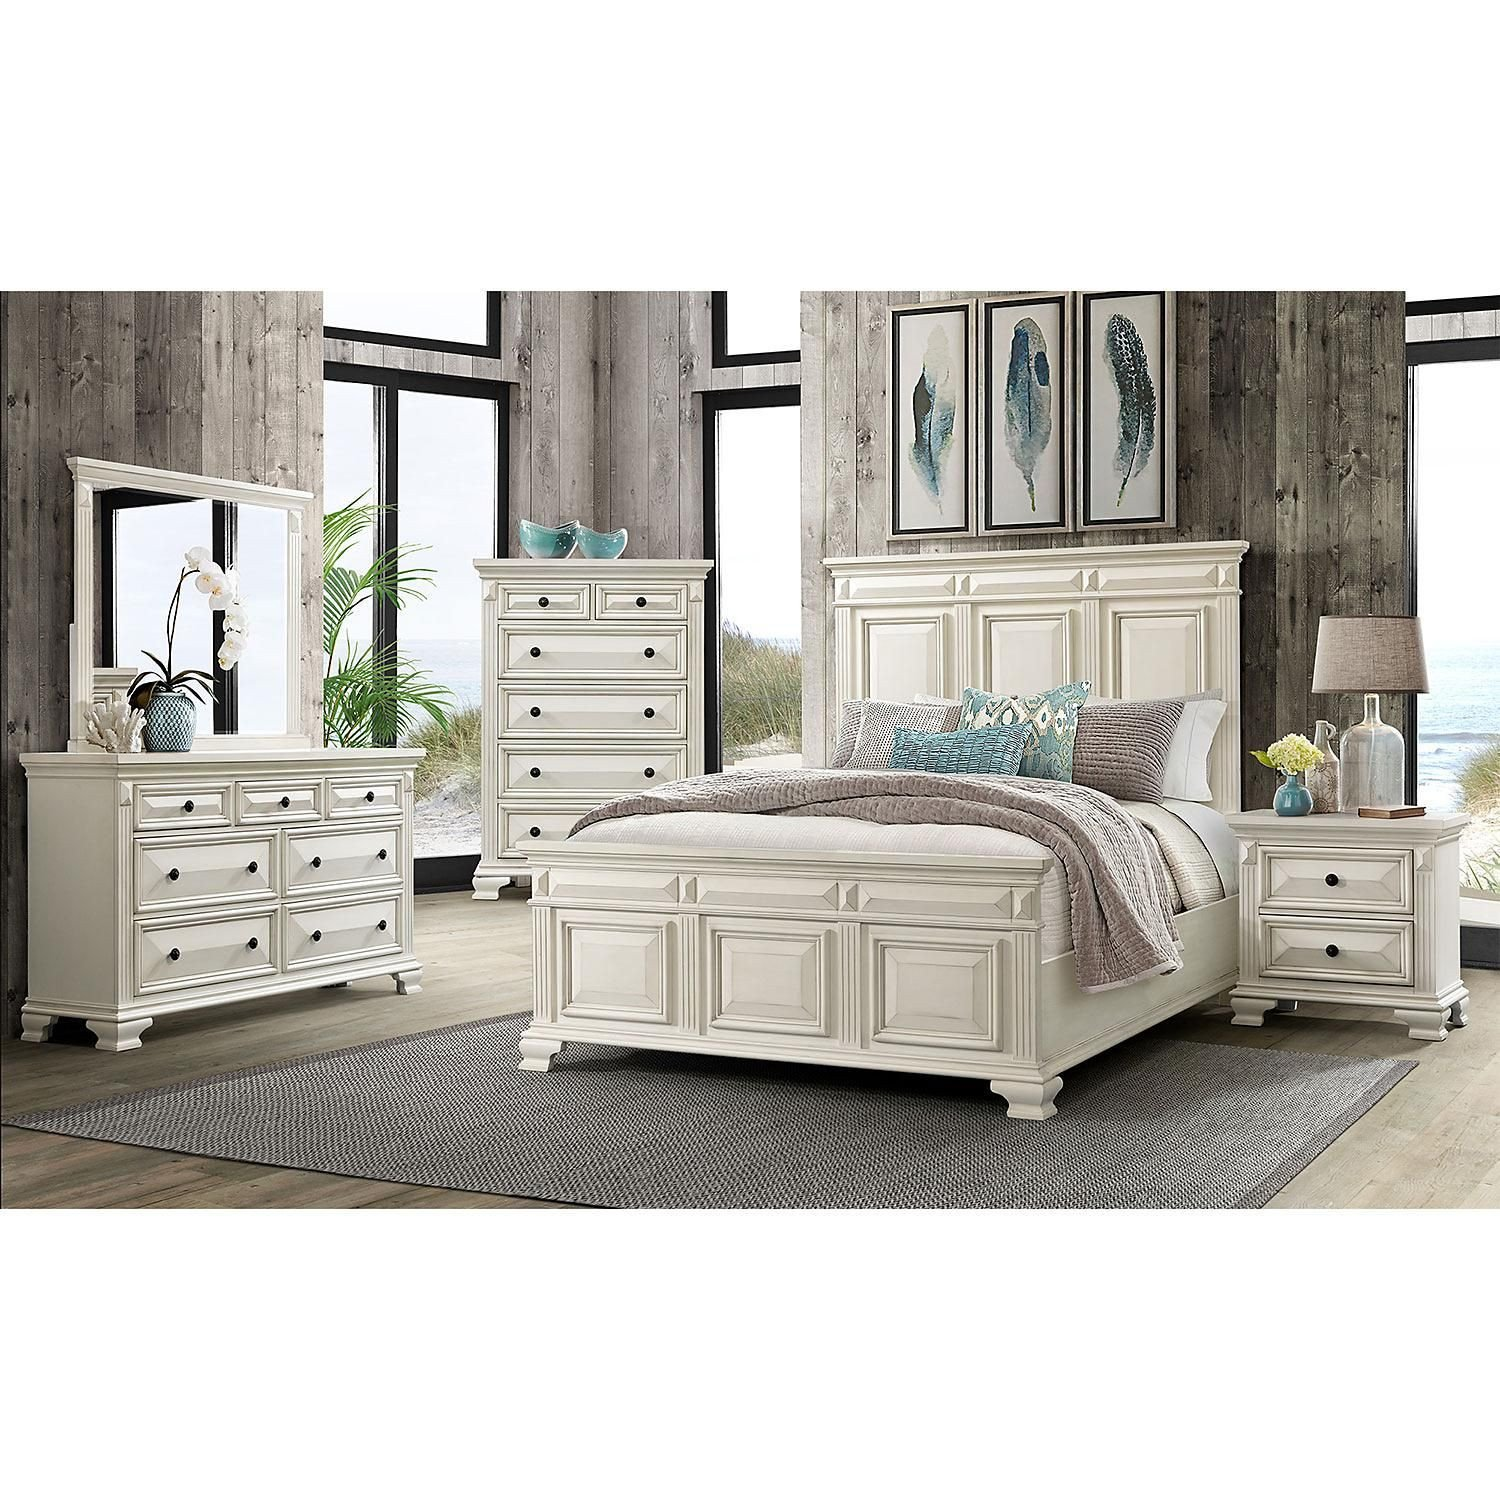 Platform Bedroom Set Queen Fresh $1599 00 society Den Trent Panel 6 Piece King Bedroom Set